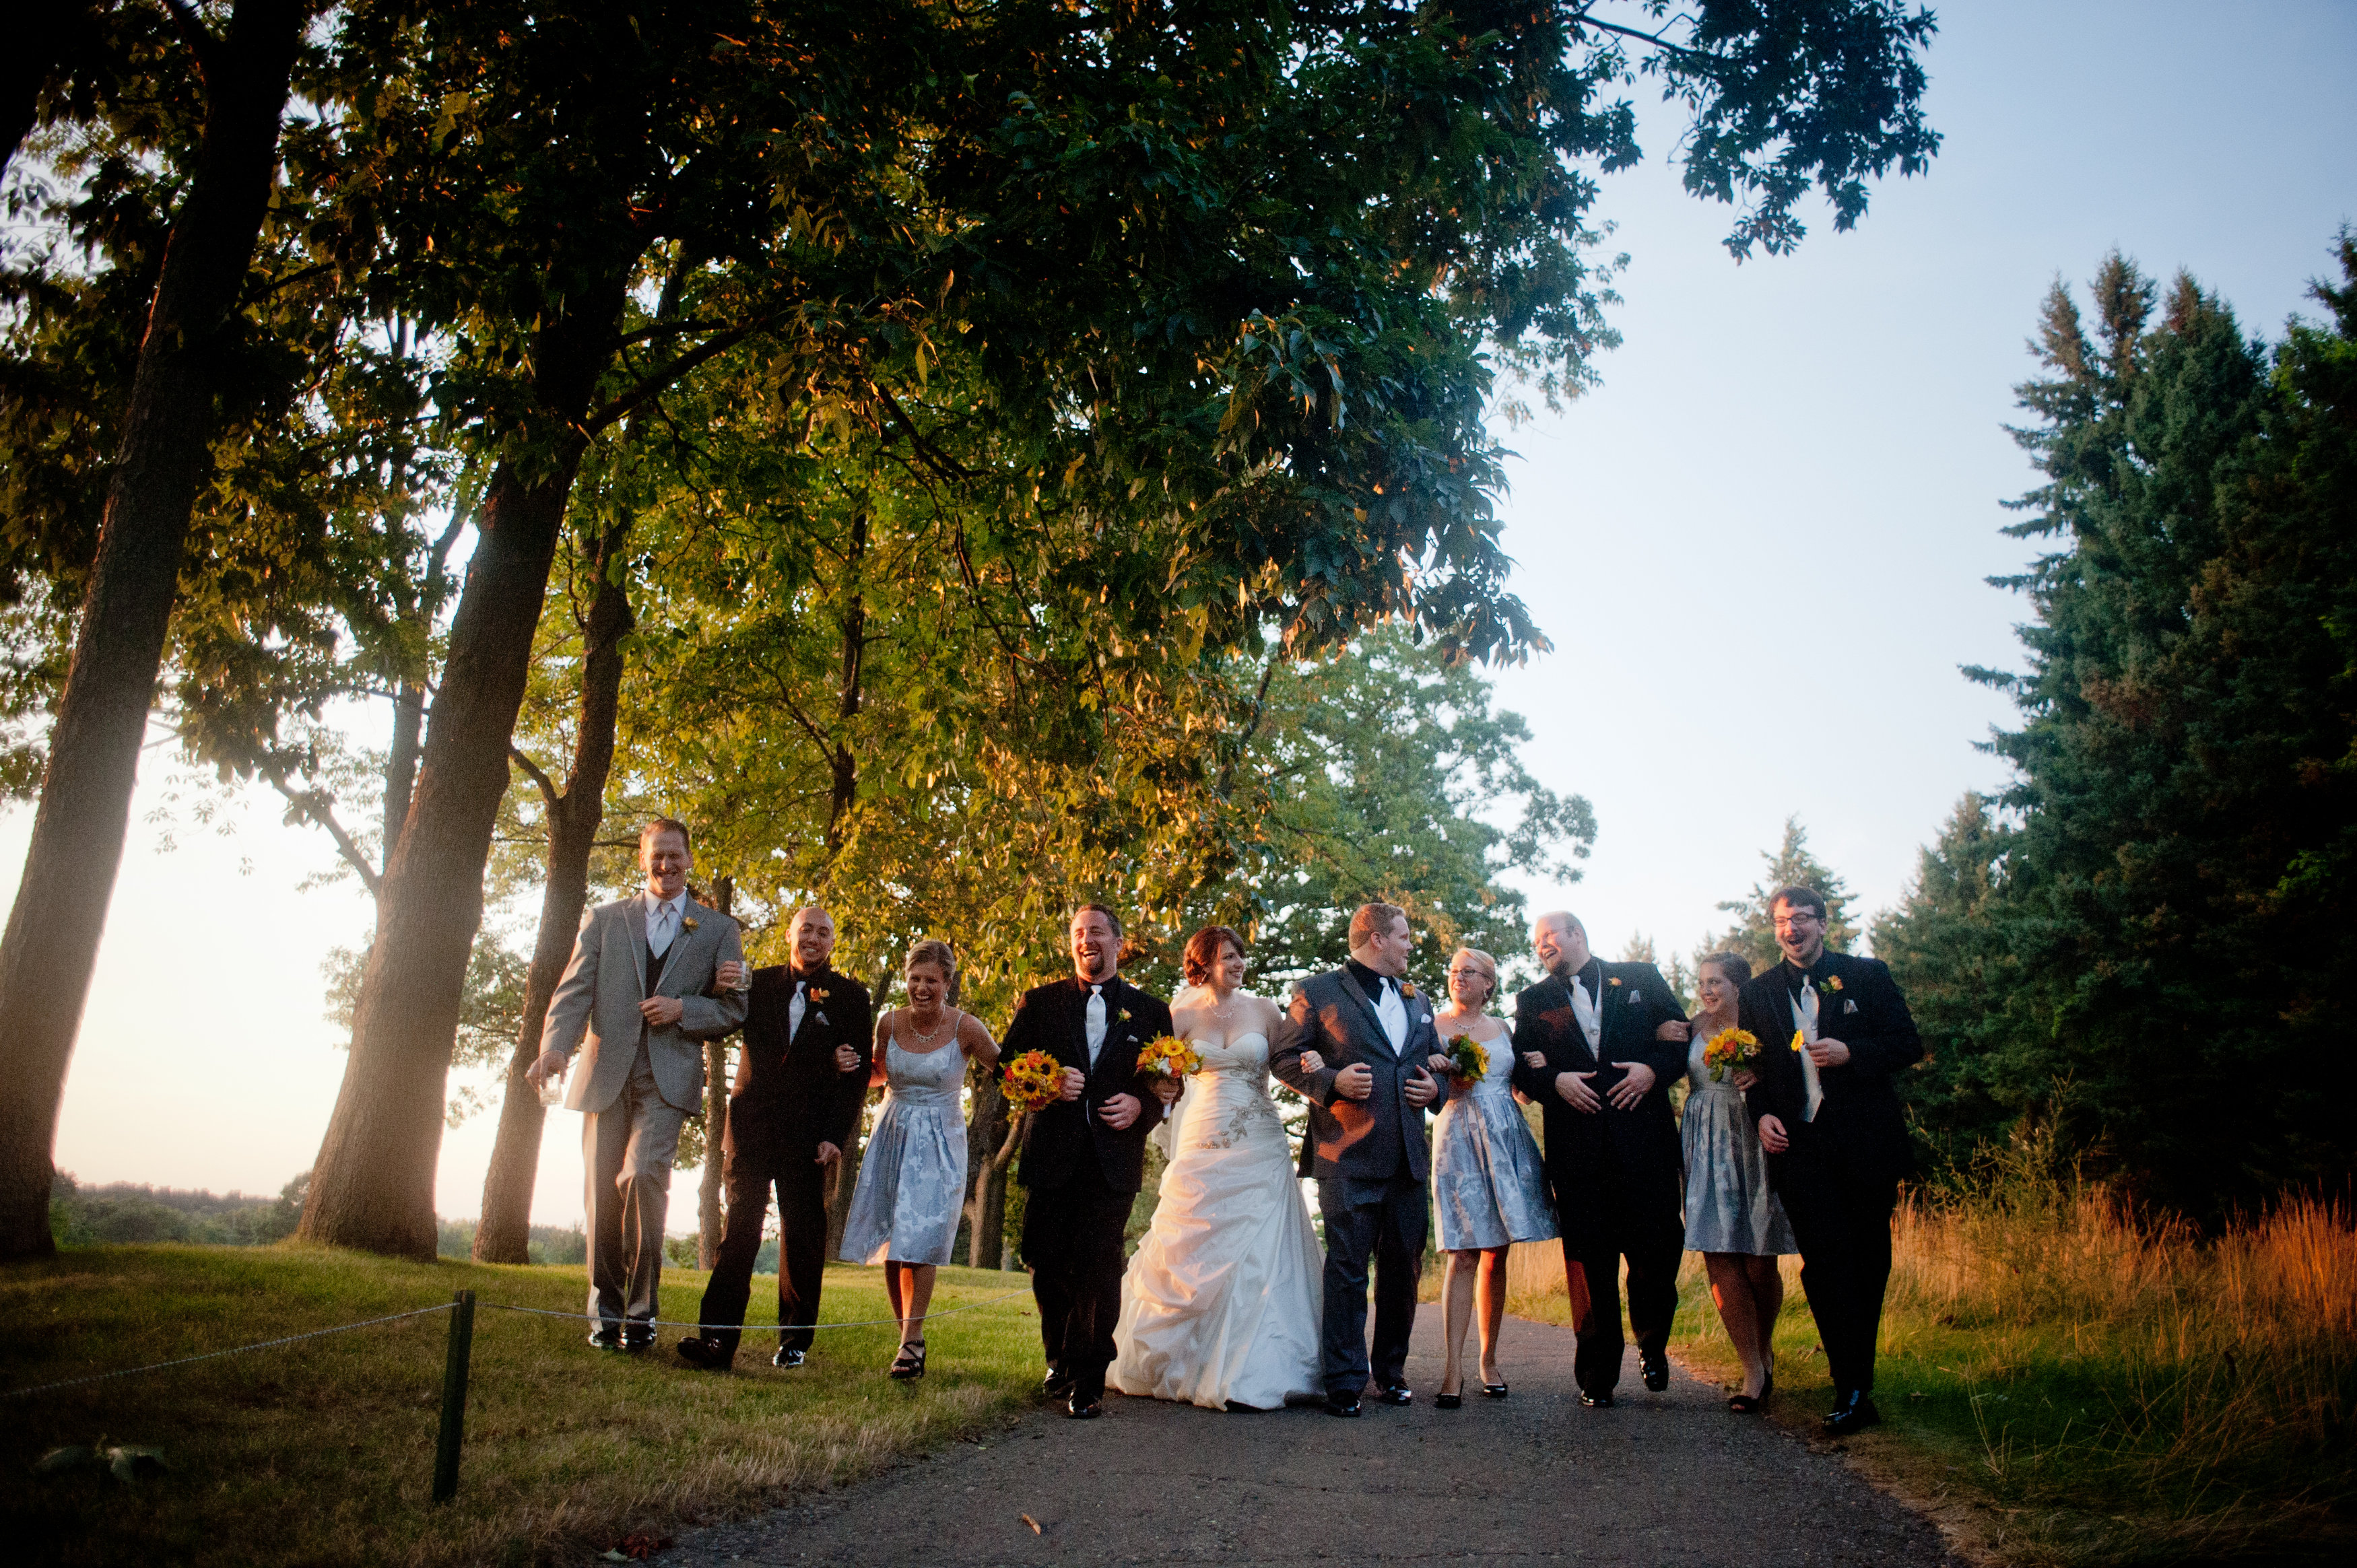 Wedding at Shepherd's Hollow